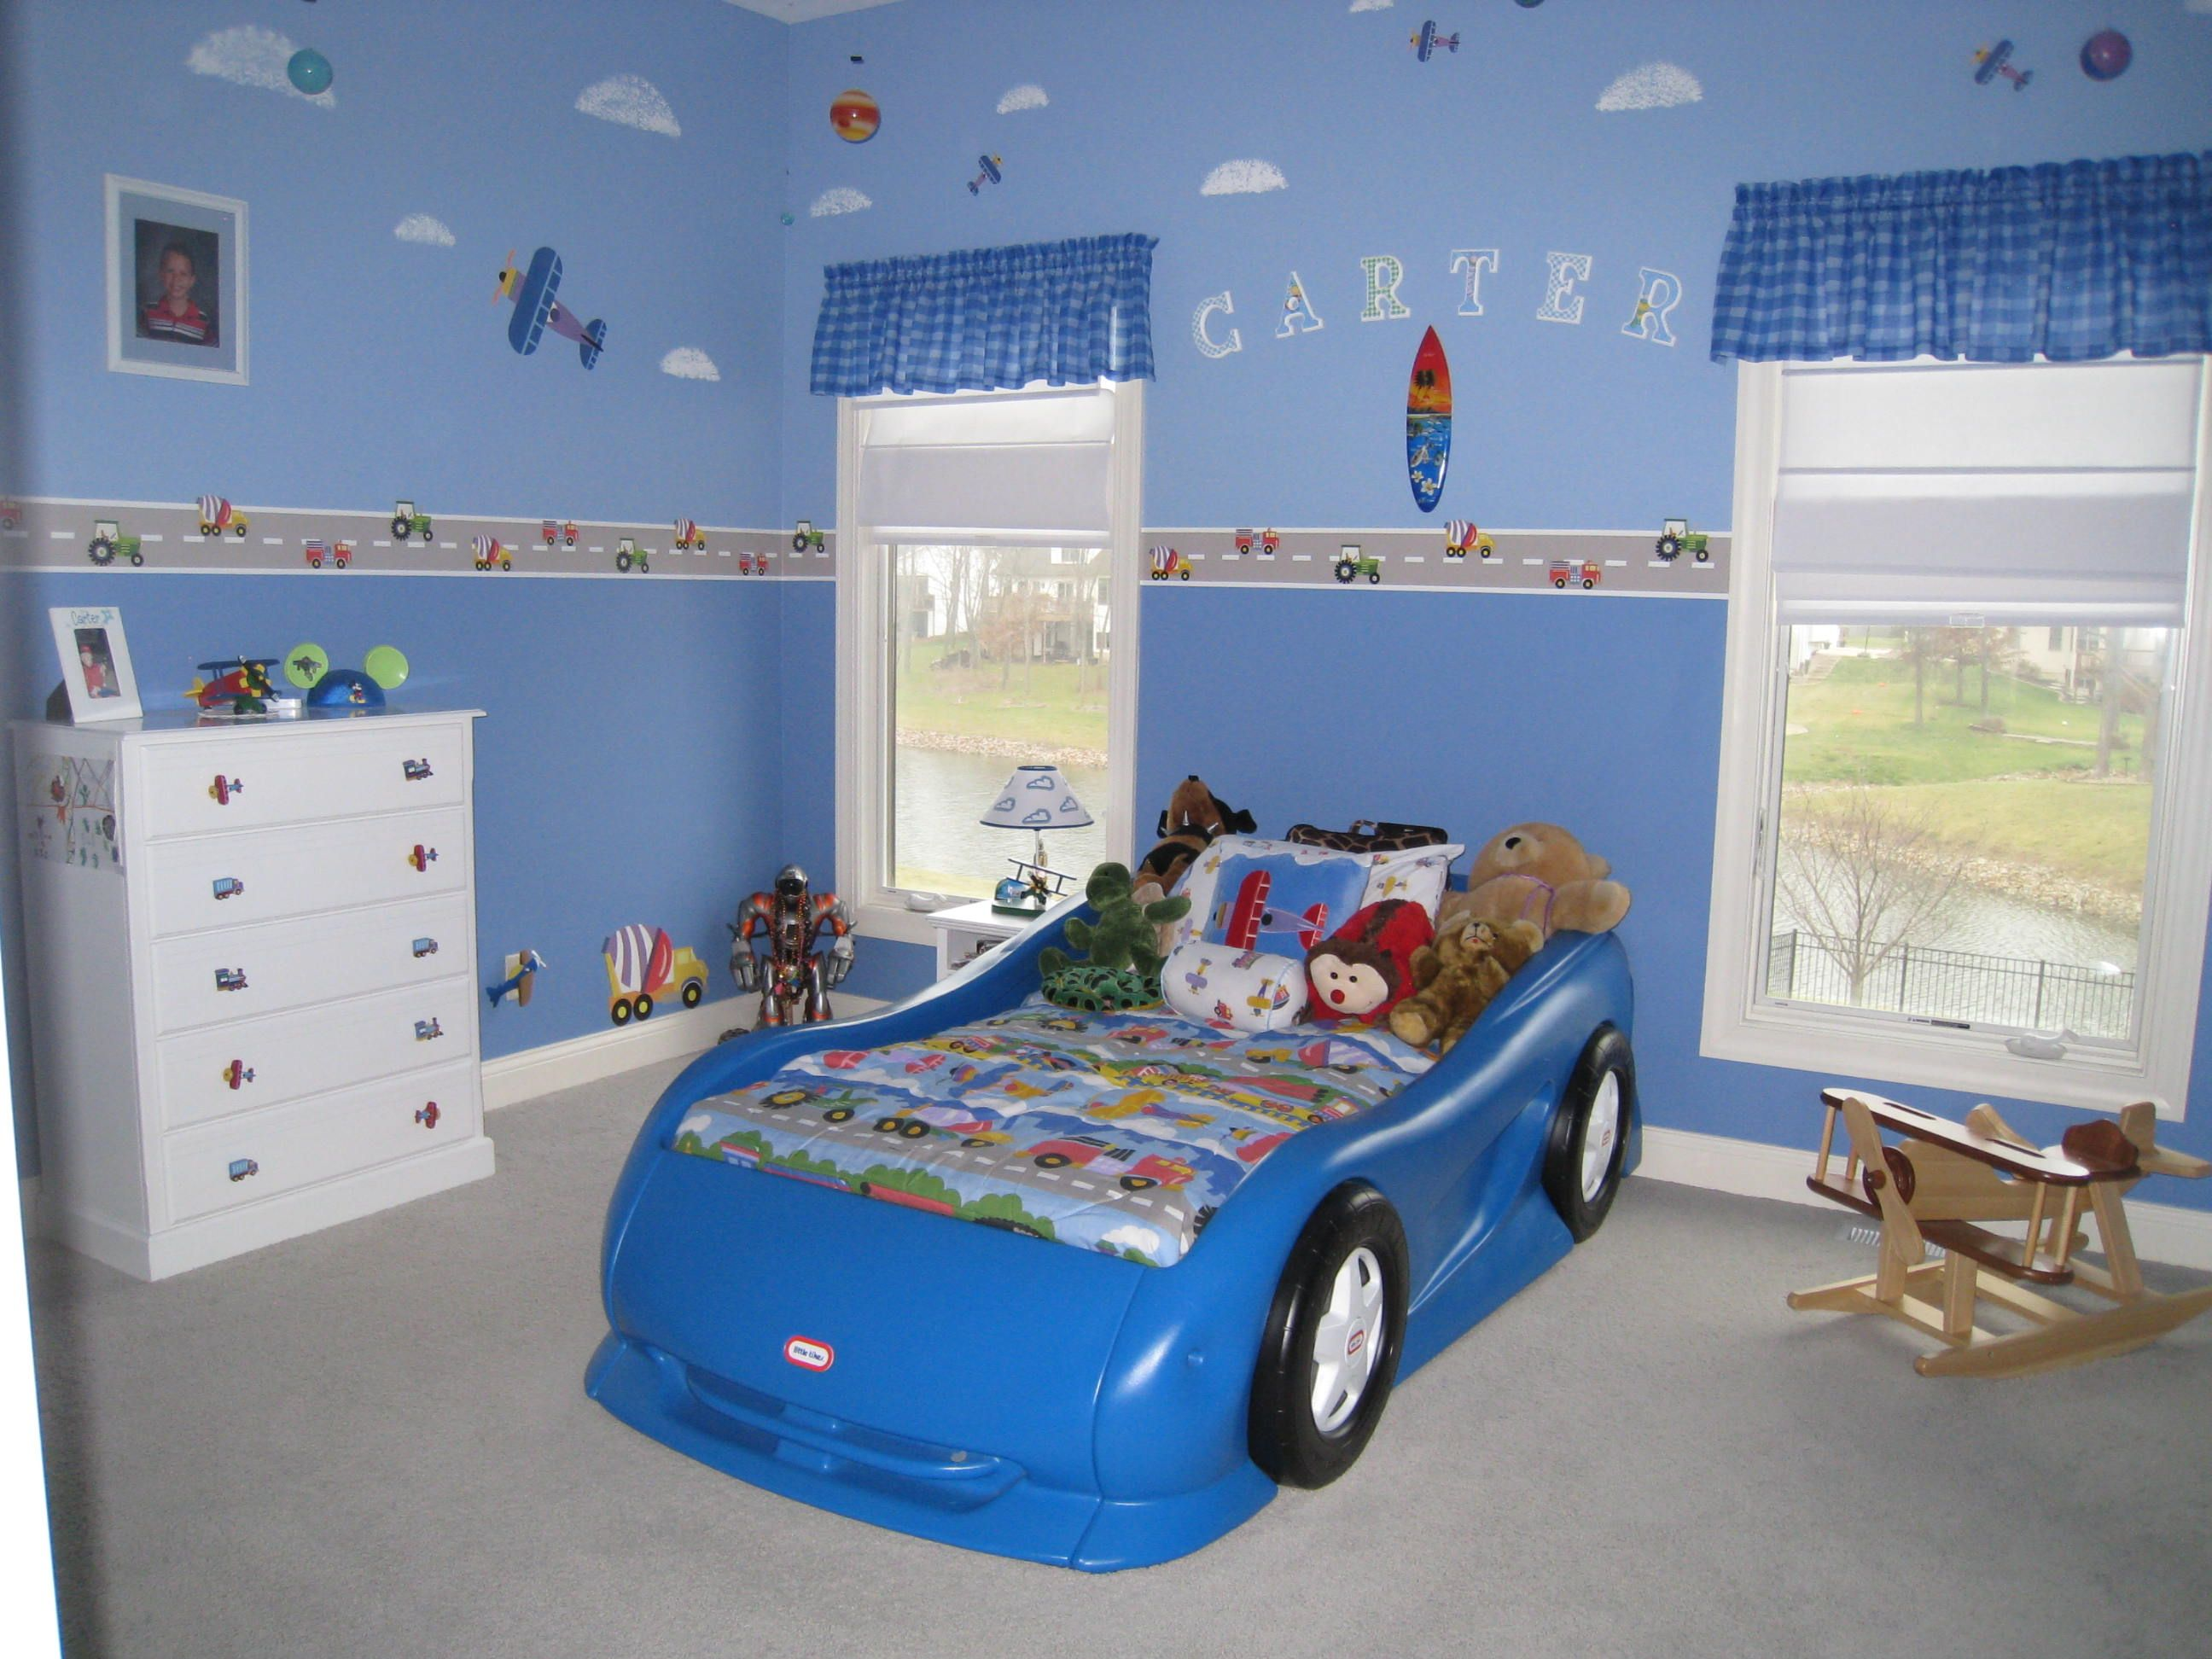 Car plane and train themed bedroom boy 39 s bedroom ideas for Car room ideas